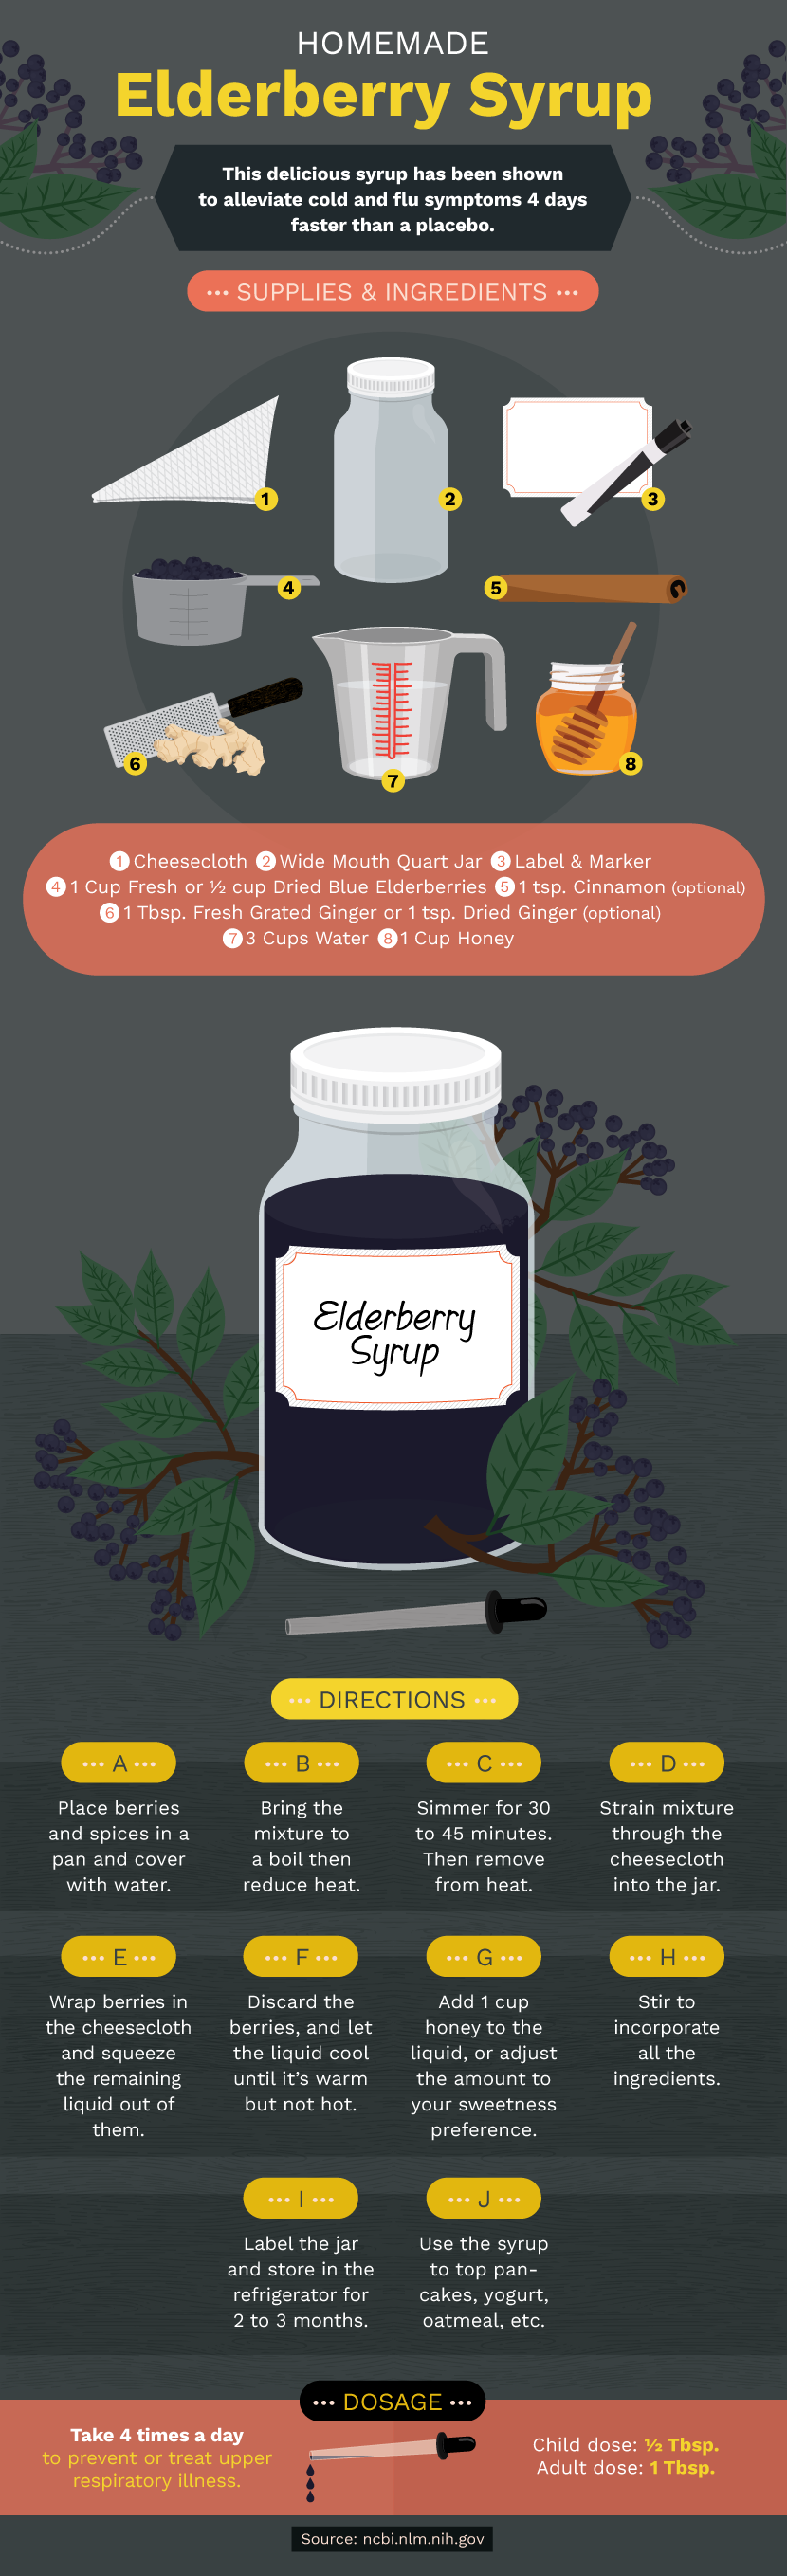 Homemade Elderberry Syrup Recipe - How to Beat Flu Season